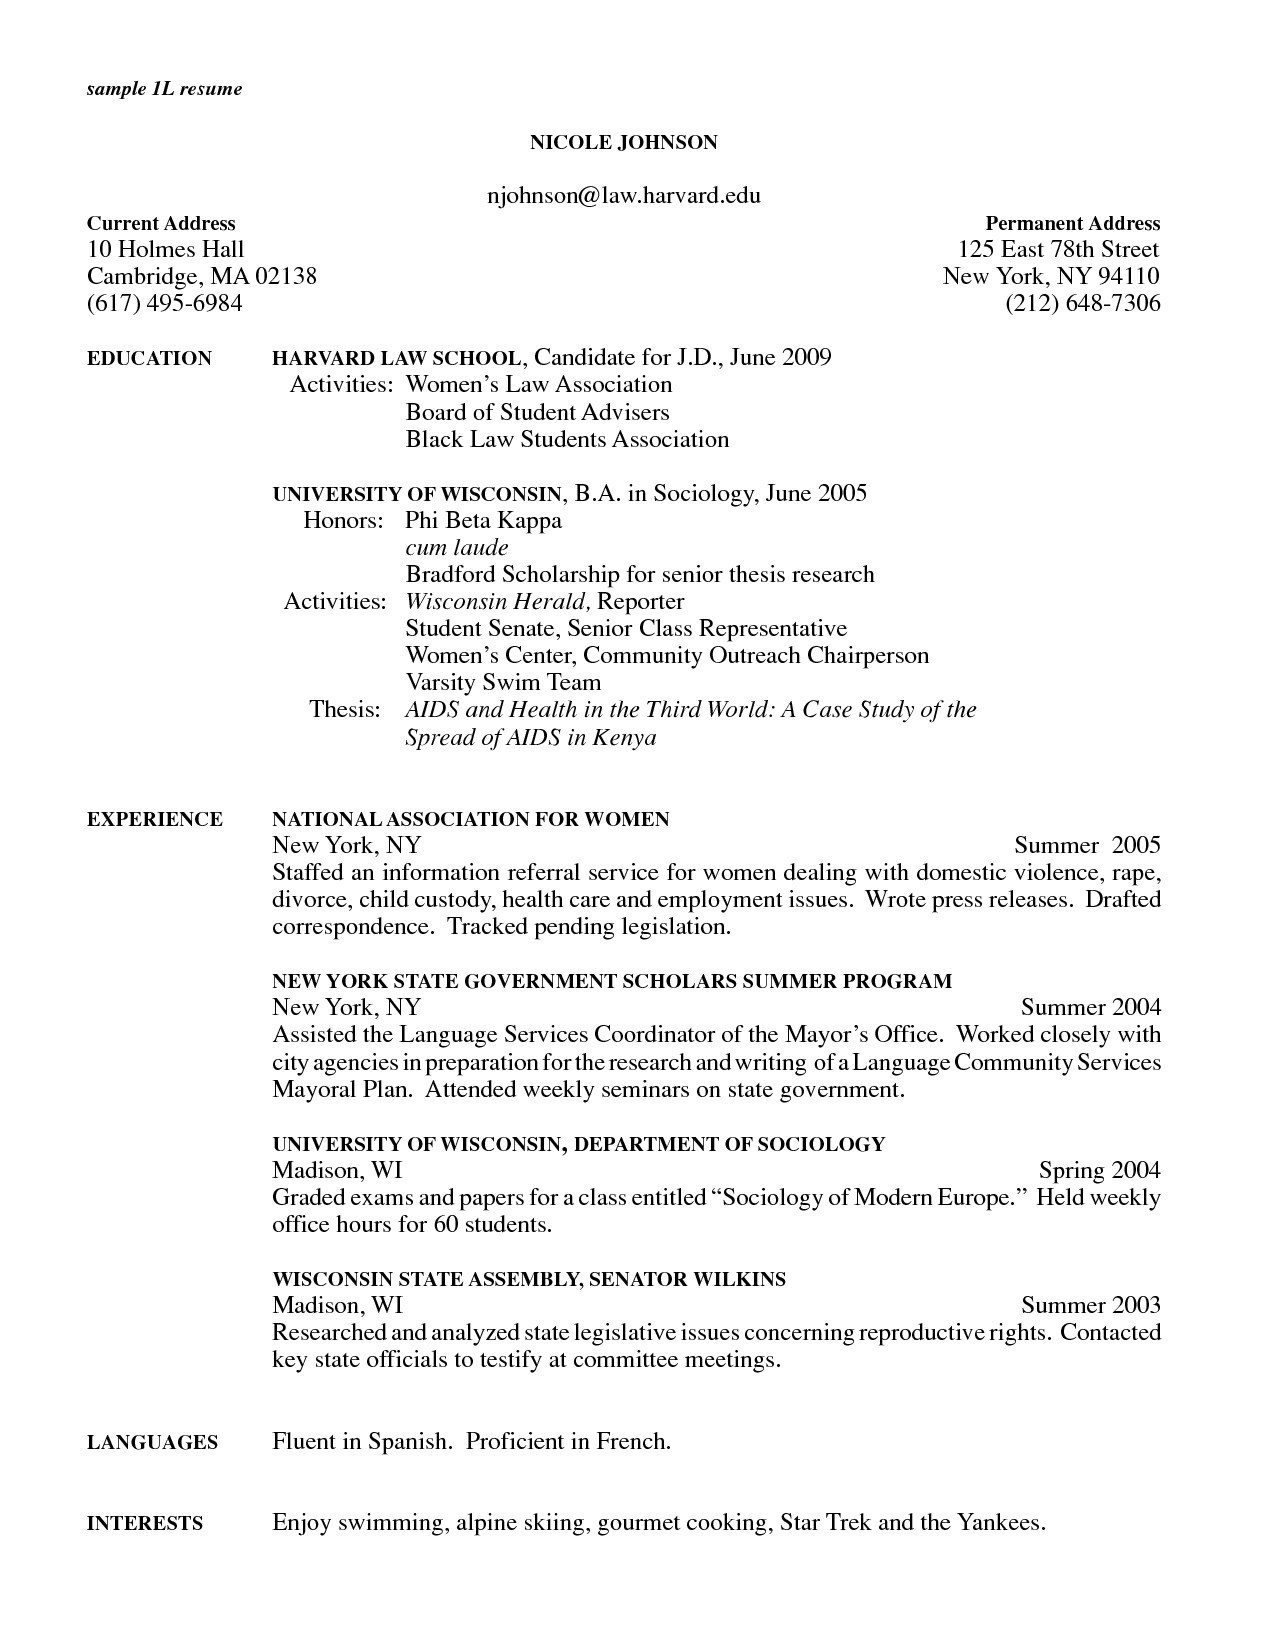 Pastor Resume Template - Pastor Resume Template Unique Beautiful Pastor Resume Template